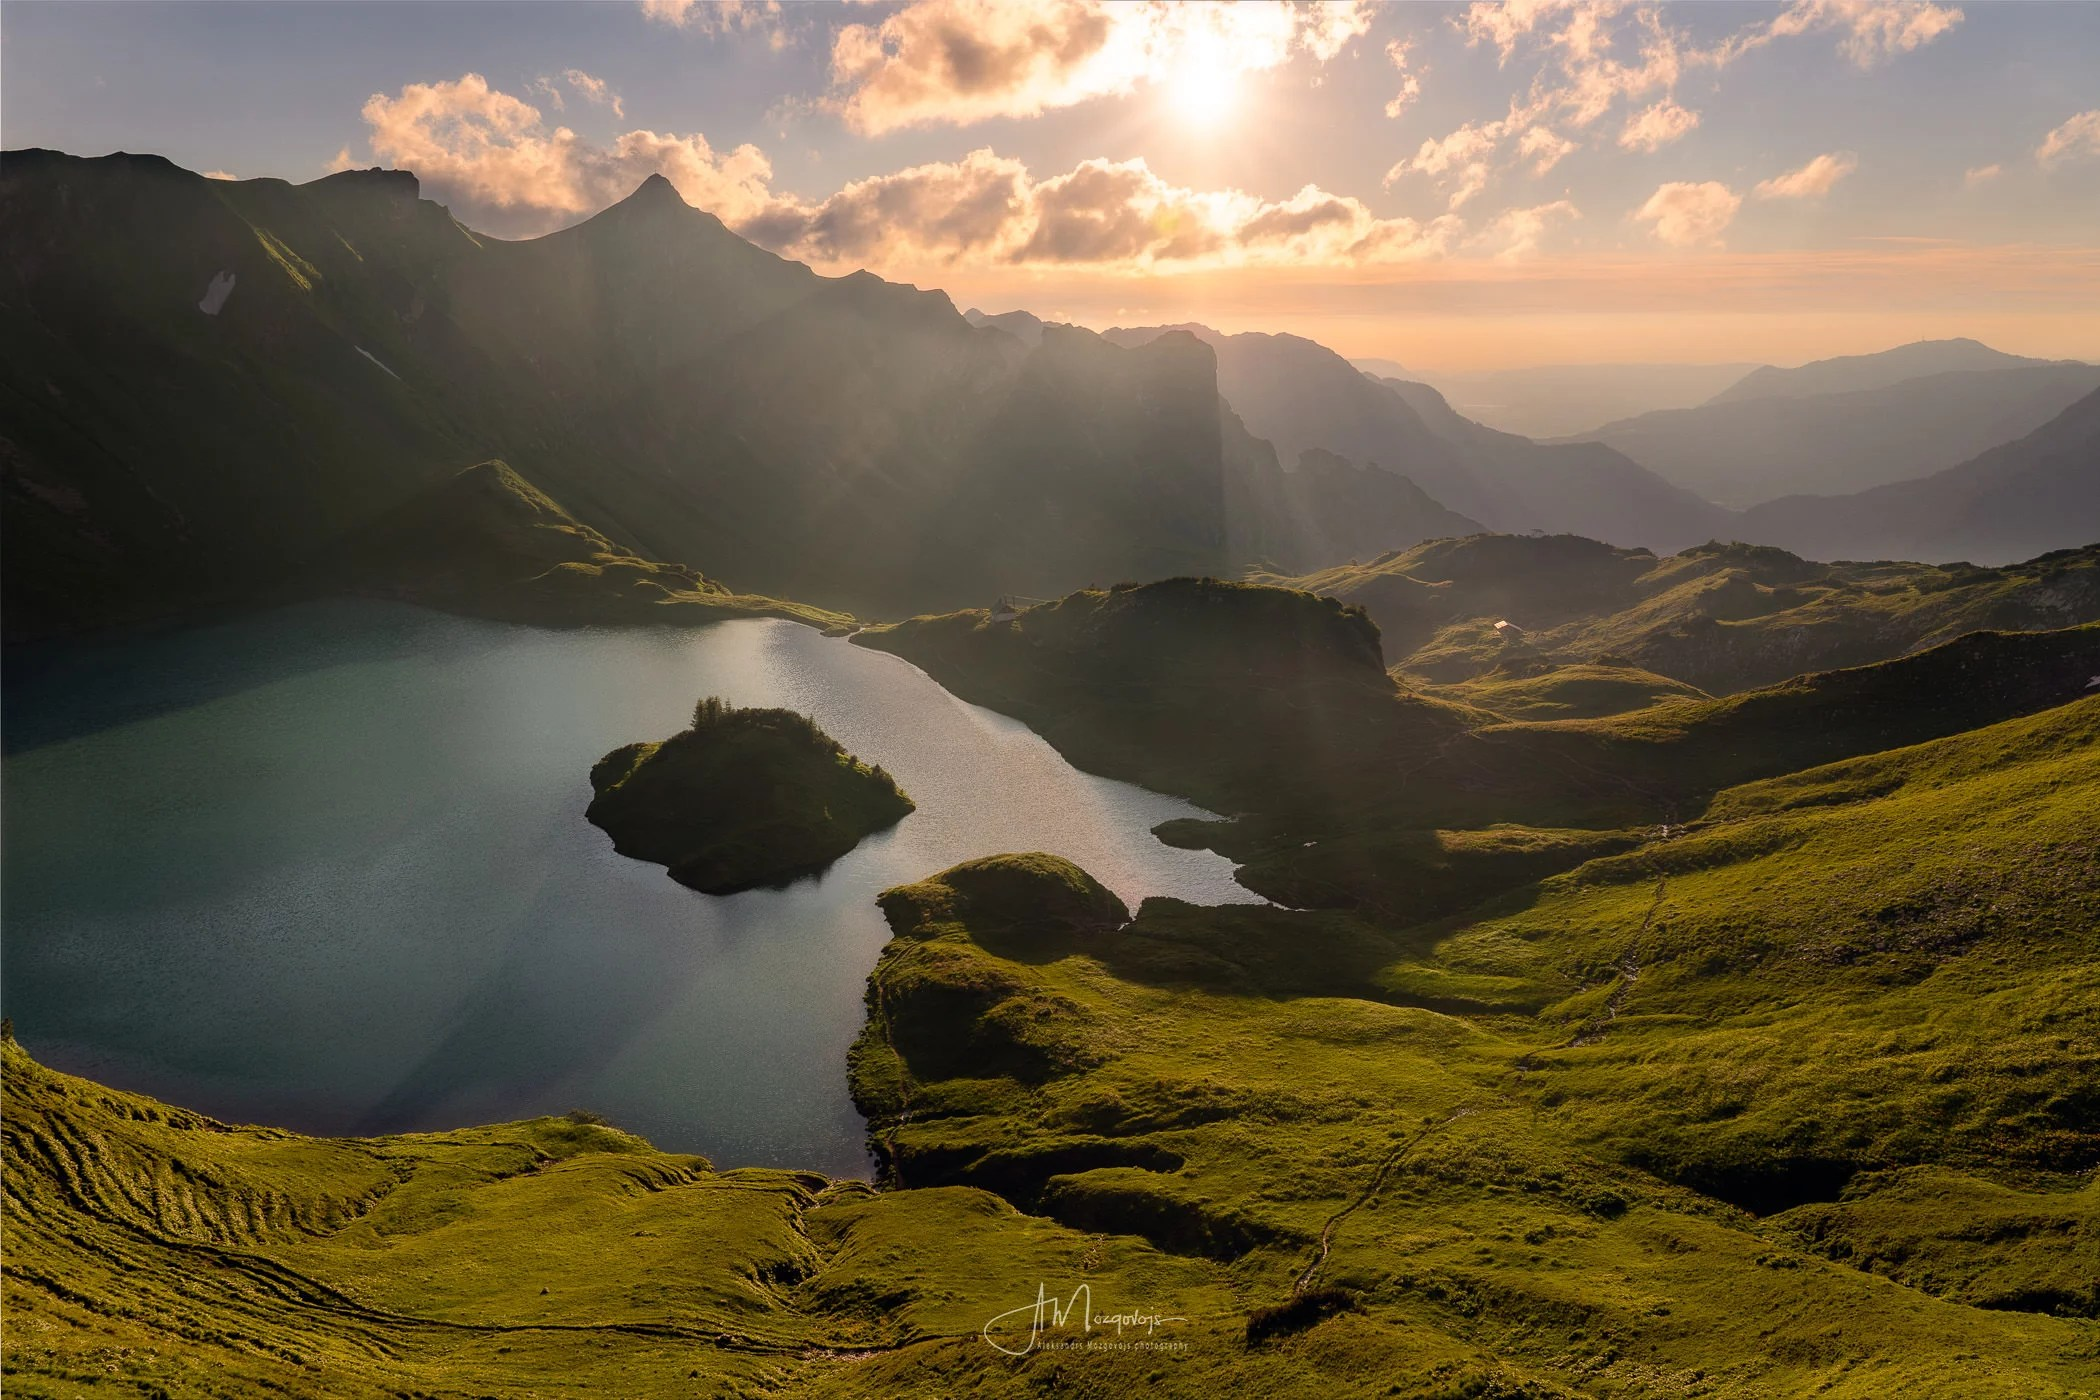 Lake Schrecksee during golden hour